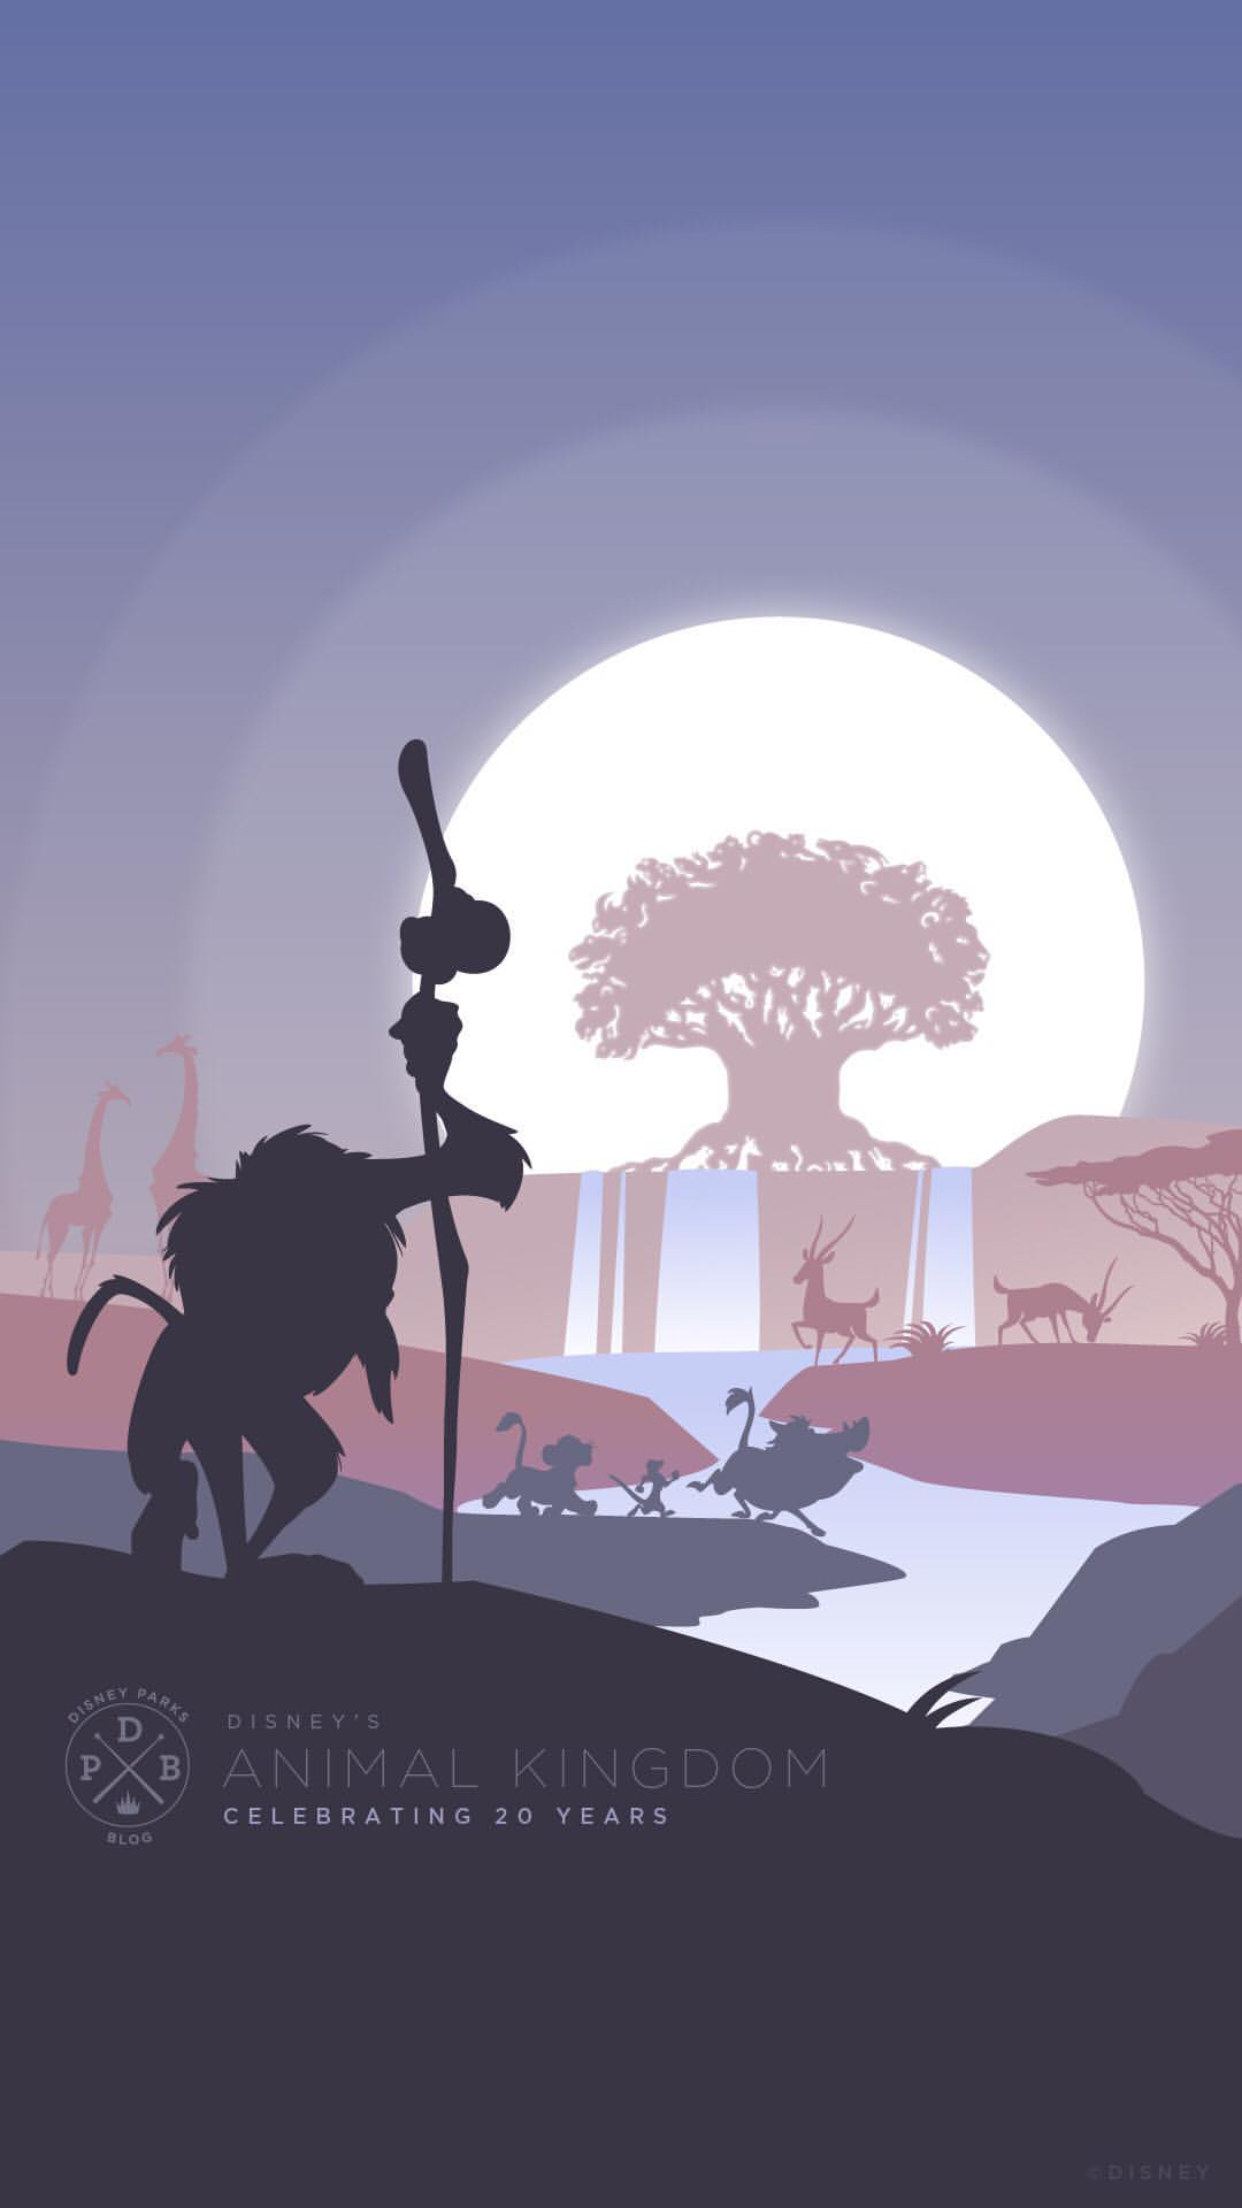 Animal Kingdom Earth Day Rafiki Background Lock Screen Wallpaper Cellphone Iphone Android Animal Kingdom Disney Disney Parks Blog Wallpaper